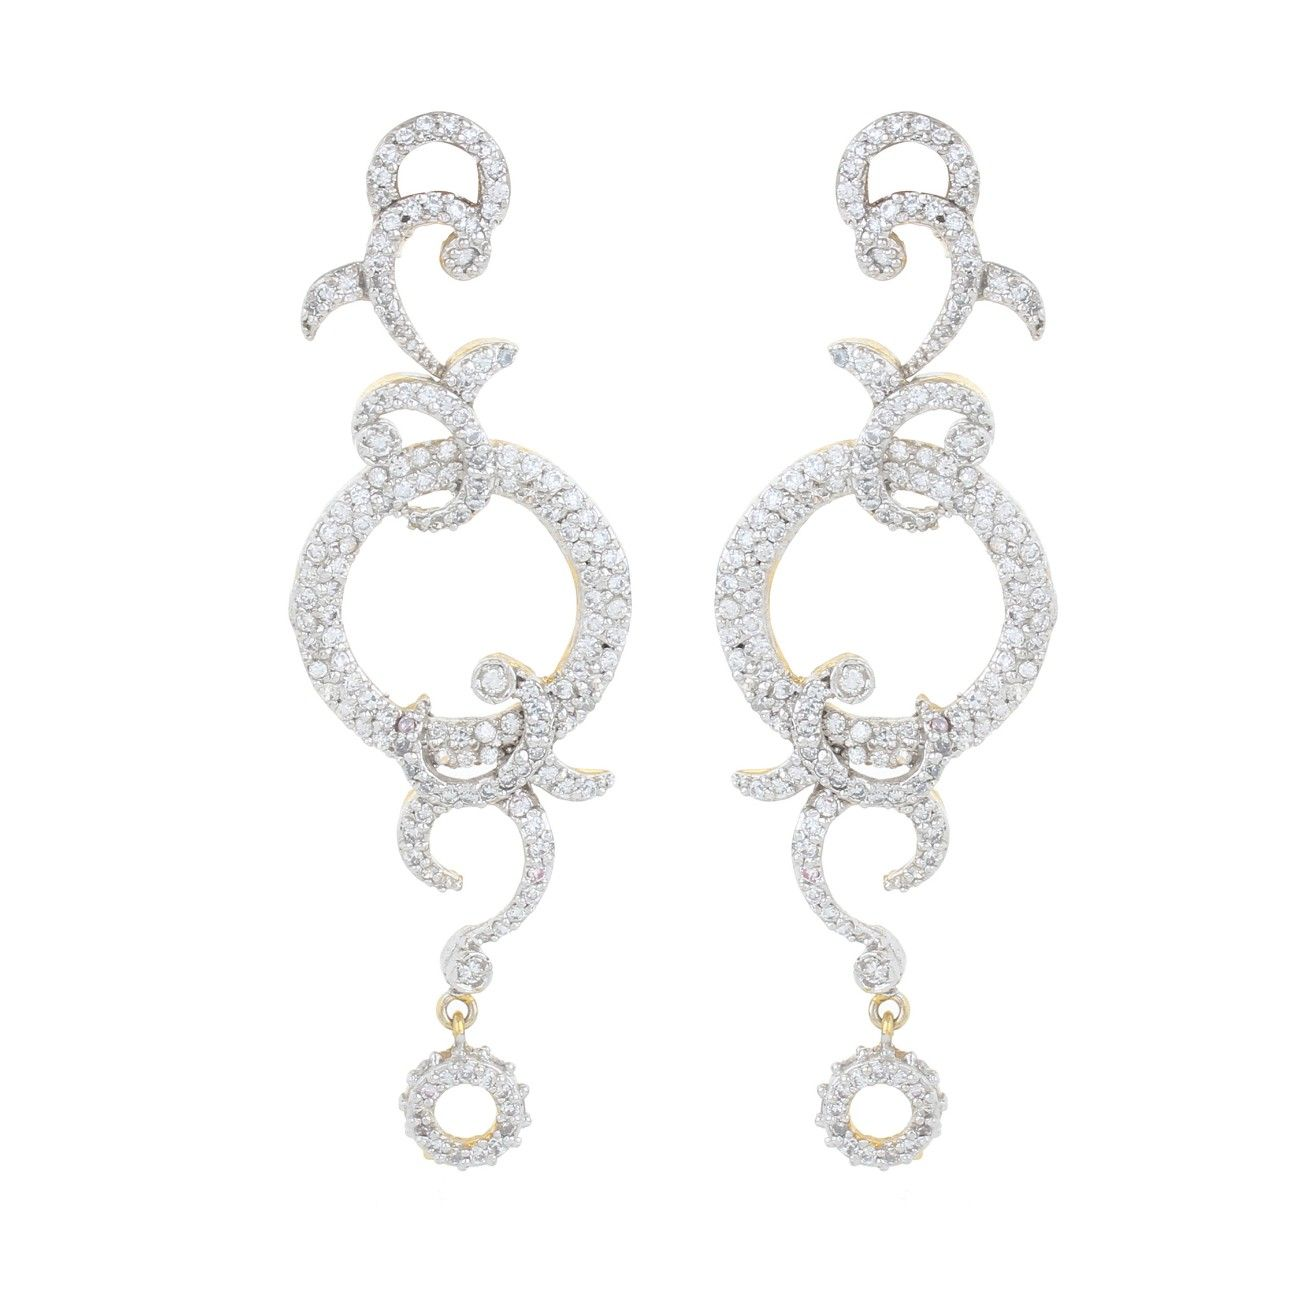 Happiness collection long silver abstract studded earrings for women dilan jewels